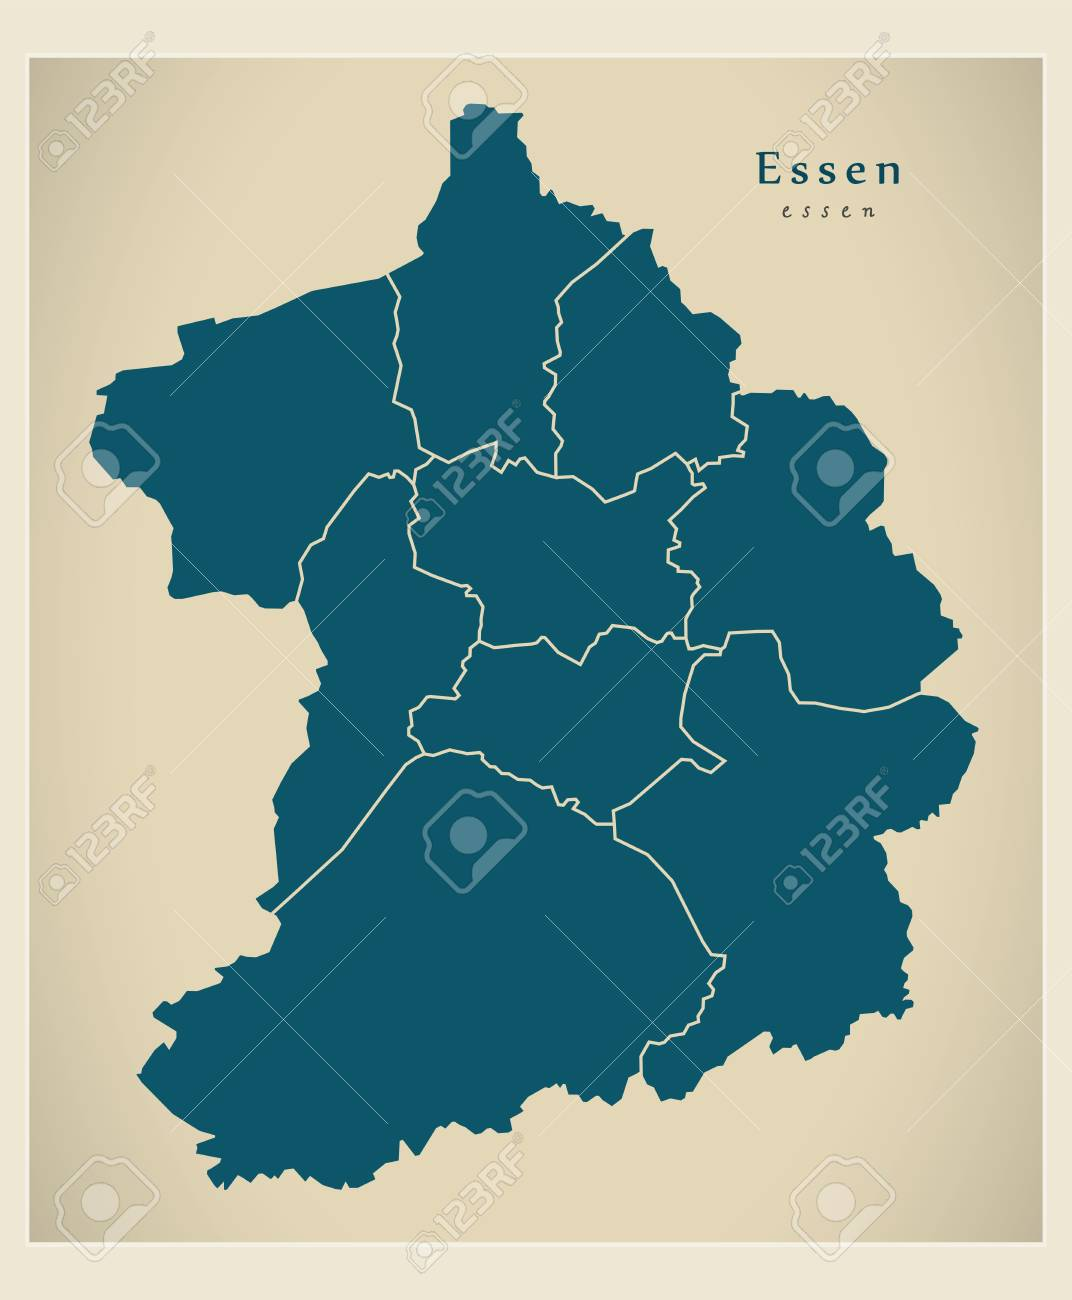 Modern City Map Essen City Of Germany With Boroughs De Royalty